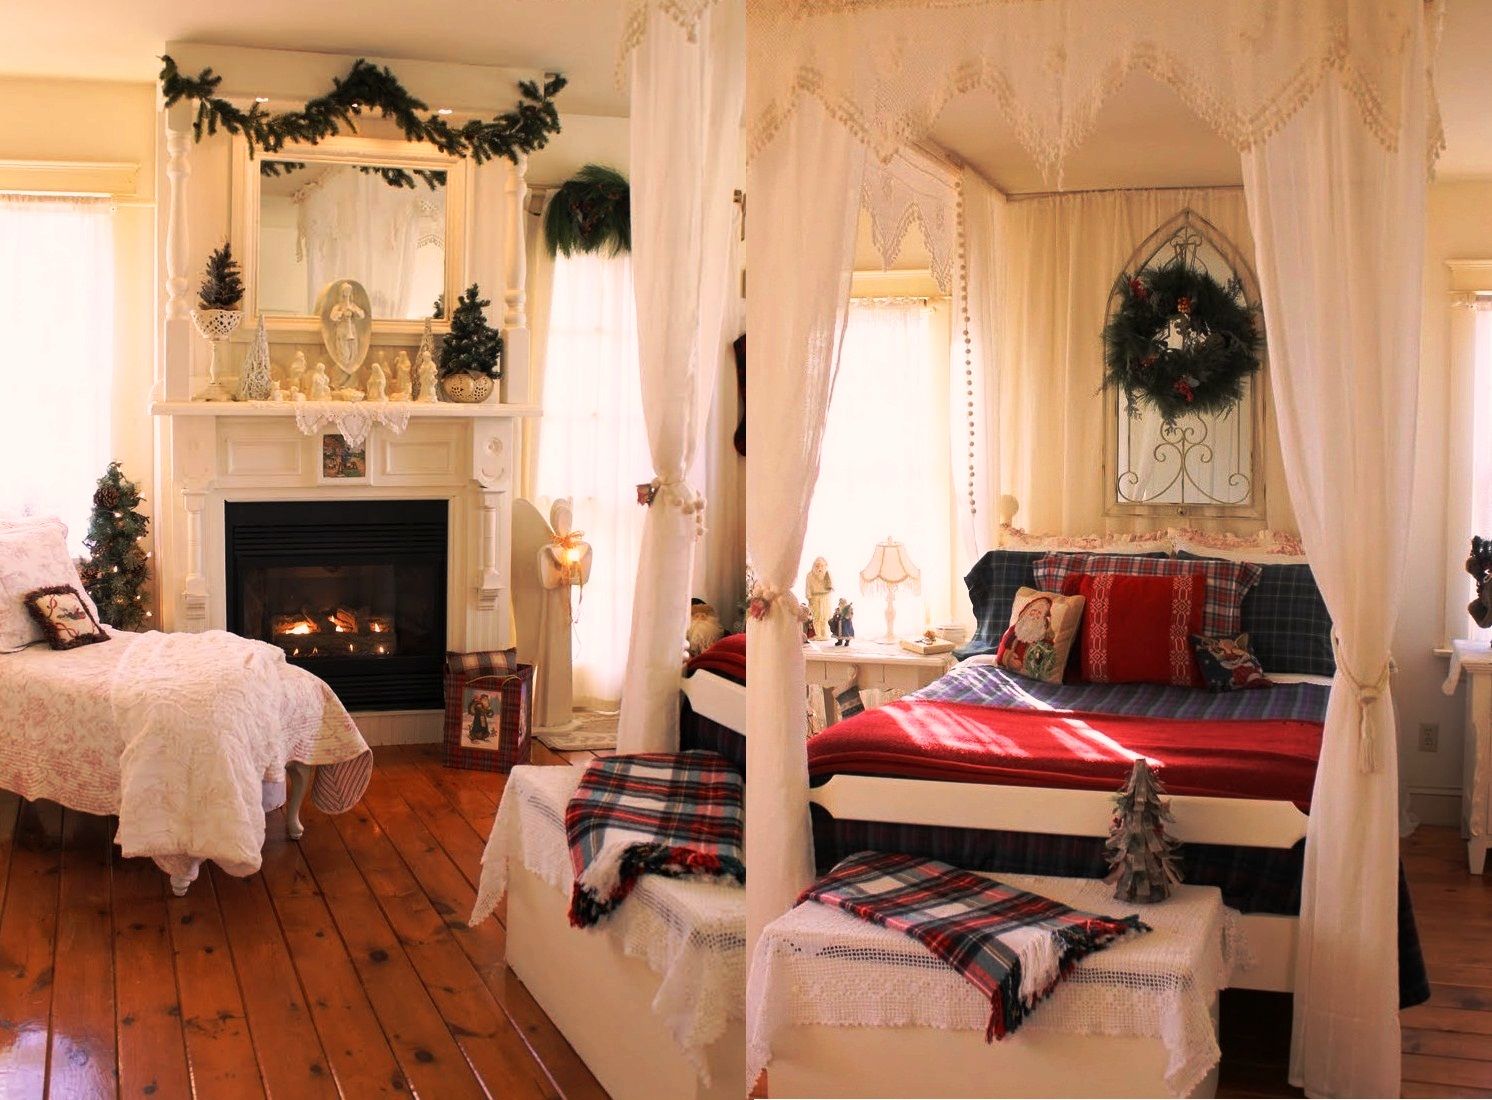 Pictures Of Bedroom Decorations 30 Christmas Bedroom Decorations Ideas